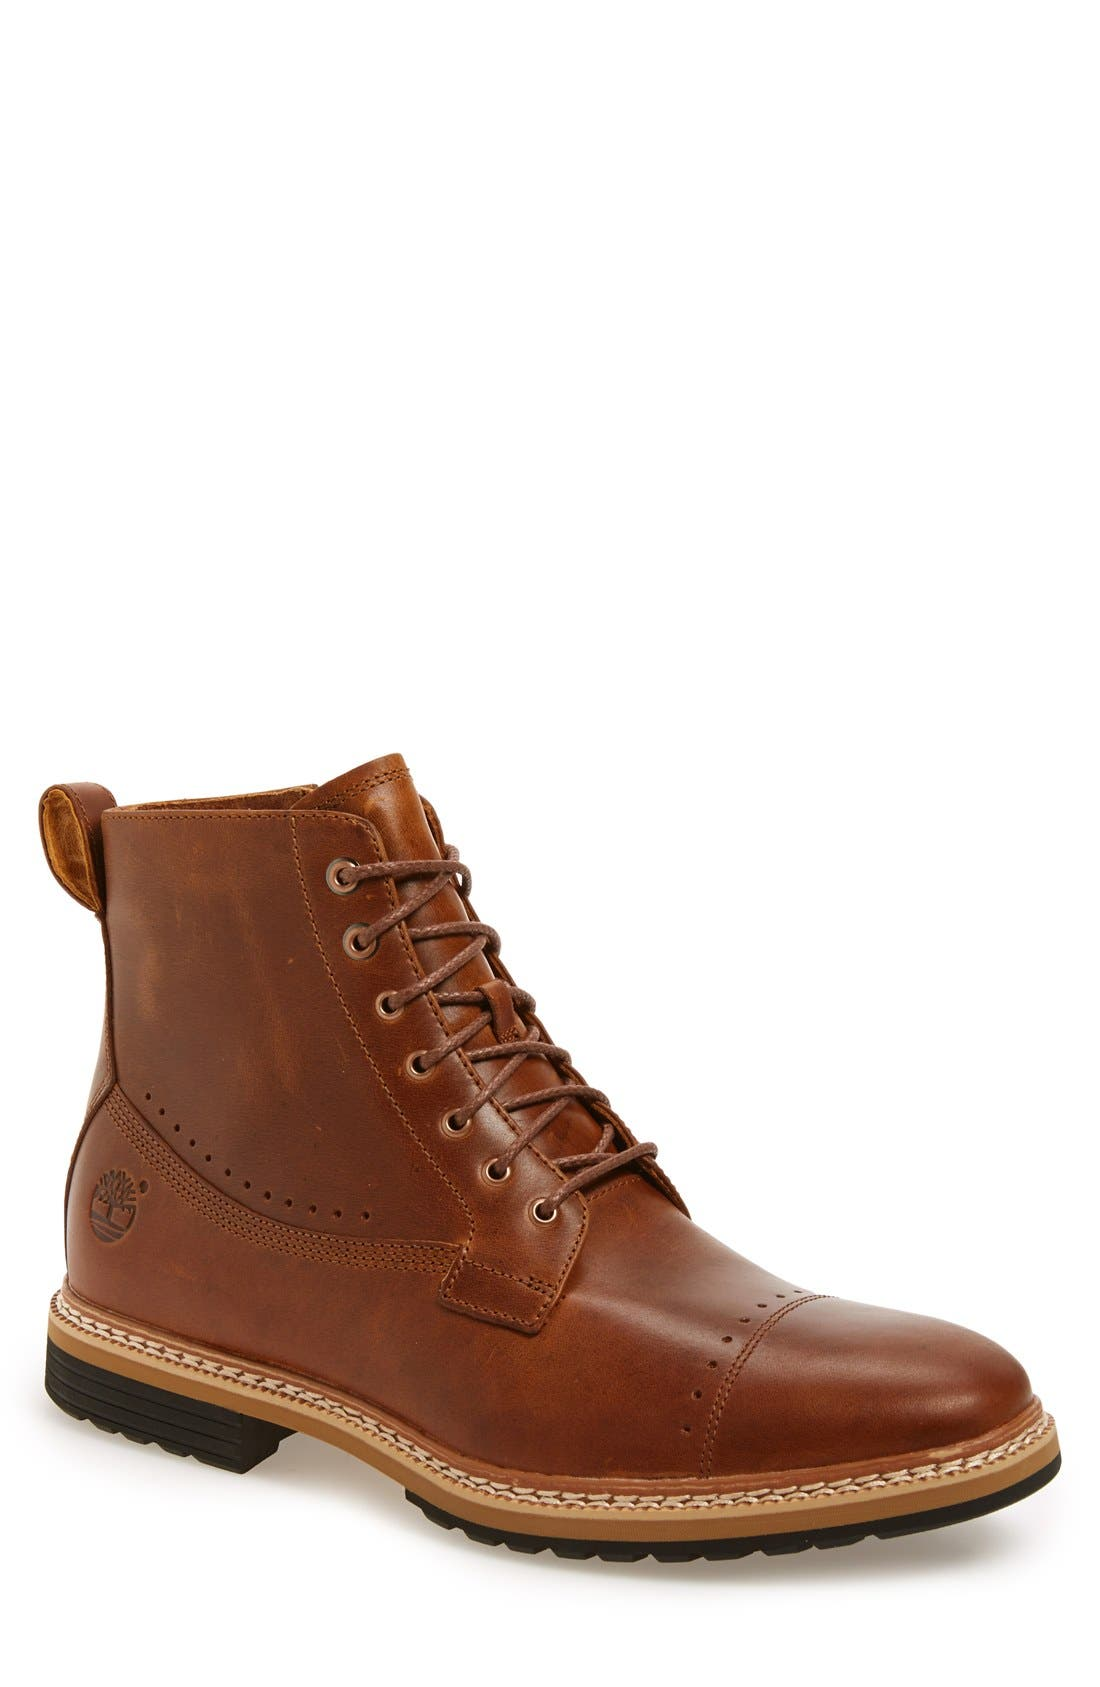 Westhaven 6 Side Zip Boot,                         Main,                         color, LIGHT BROWN LEATHER